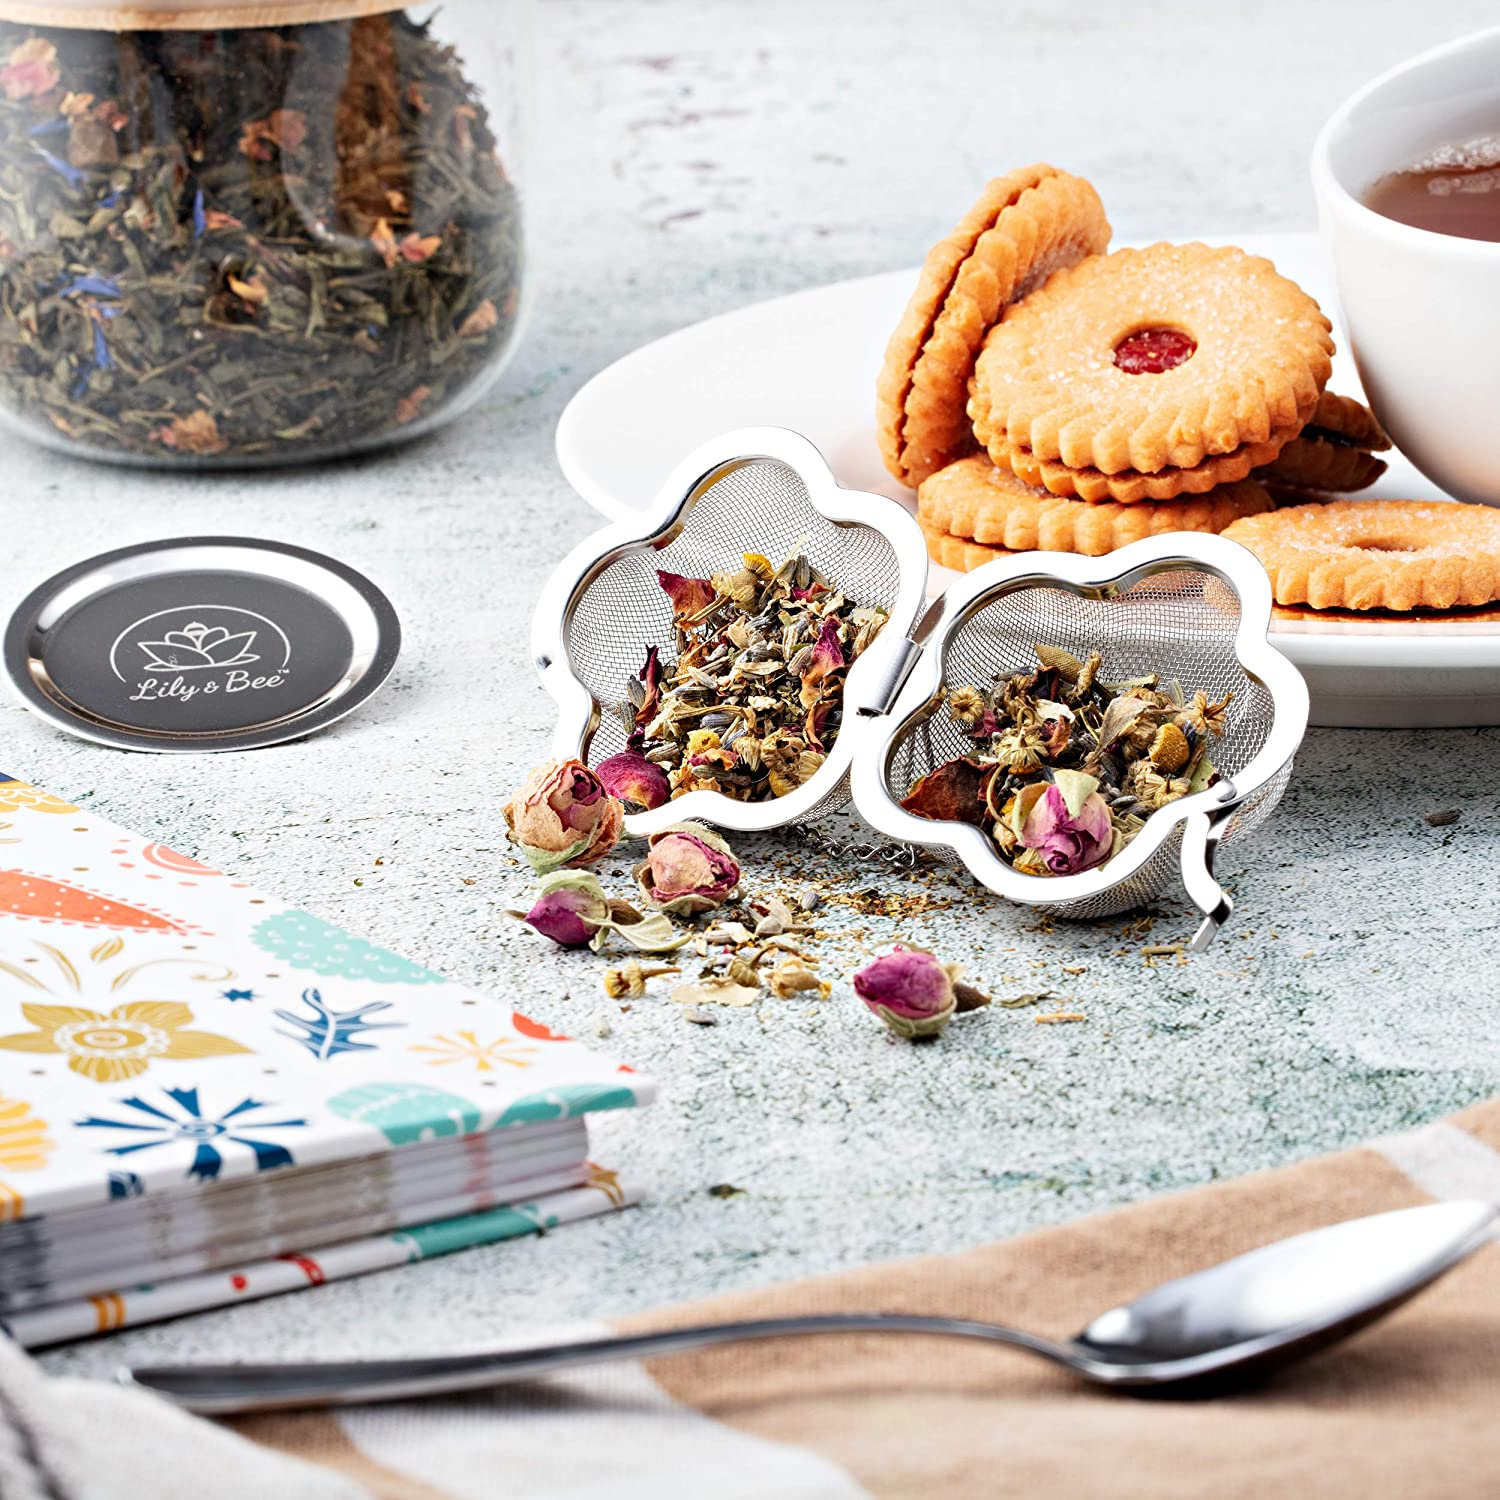 Unique Flower Shape Reusable Tea Infuser Ball for Loose Leaf Tea Cute Tea Gift Set Perfect for all Occasions Fine Mesh Stainless Steel Single Serve Strainer and Steeper with Charming Drip Tray